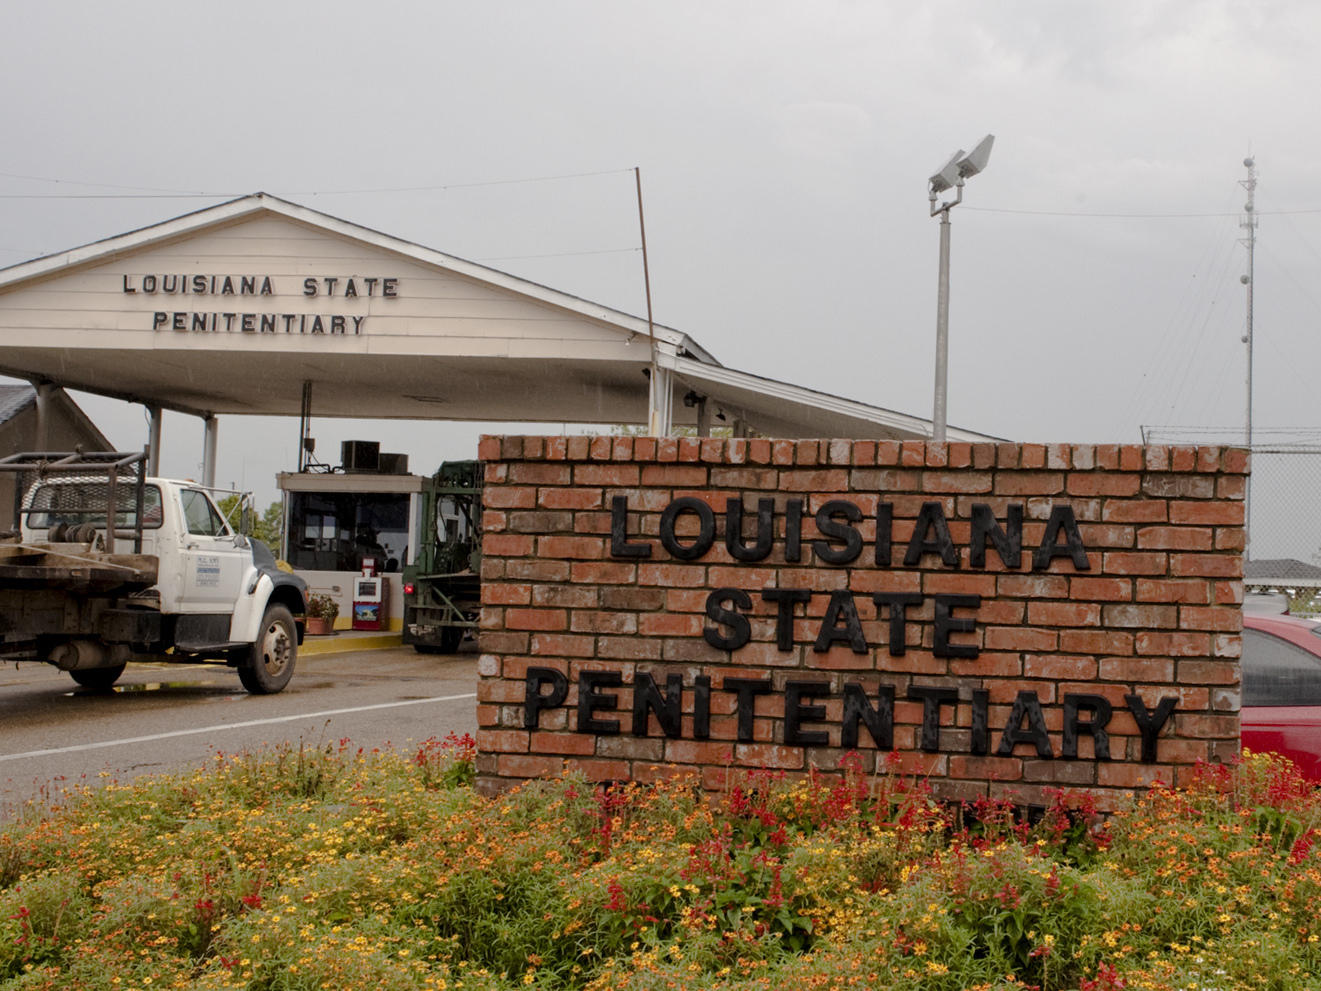 angola prison Angola state prison was located on land that was originally an 8,000-acre plantation in west feliciana parish, in a remote region of louisiana.